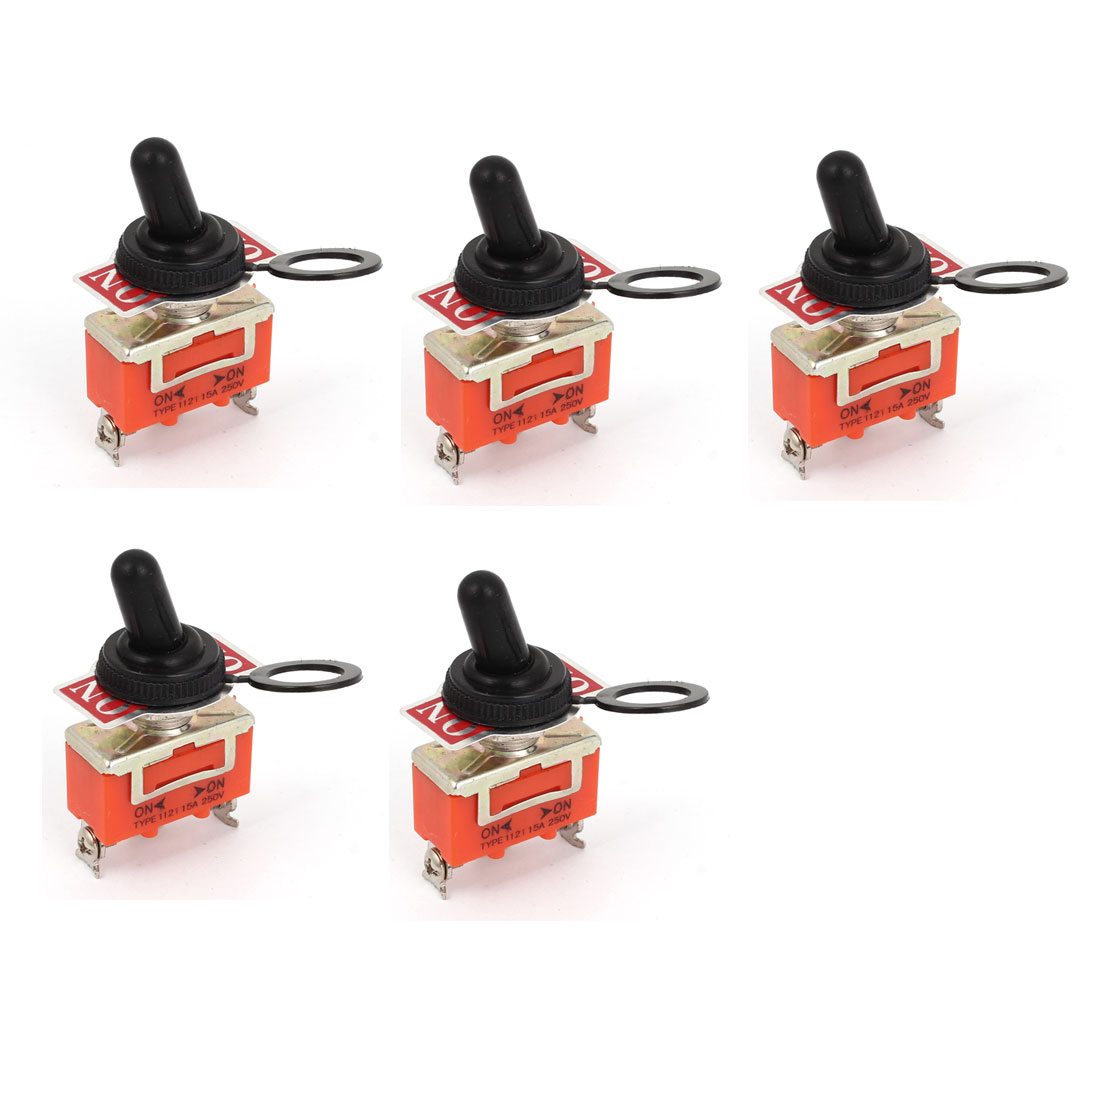 5pcs AC 250V 15A ON-ON 2 Way 3 Terminals Toggle Switch w Waterproof Cap